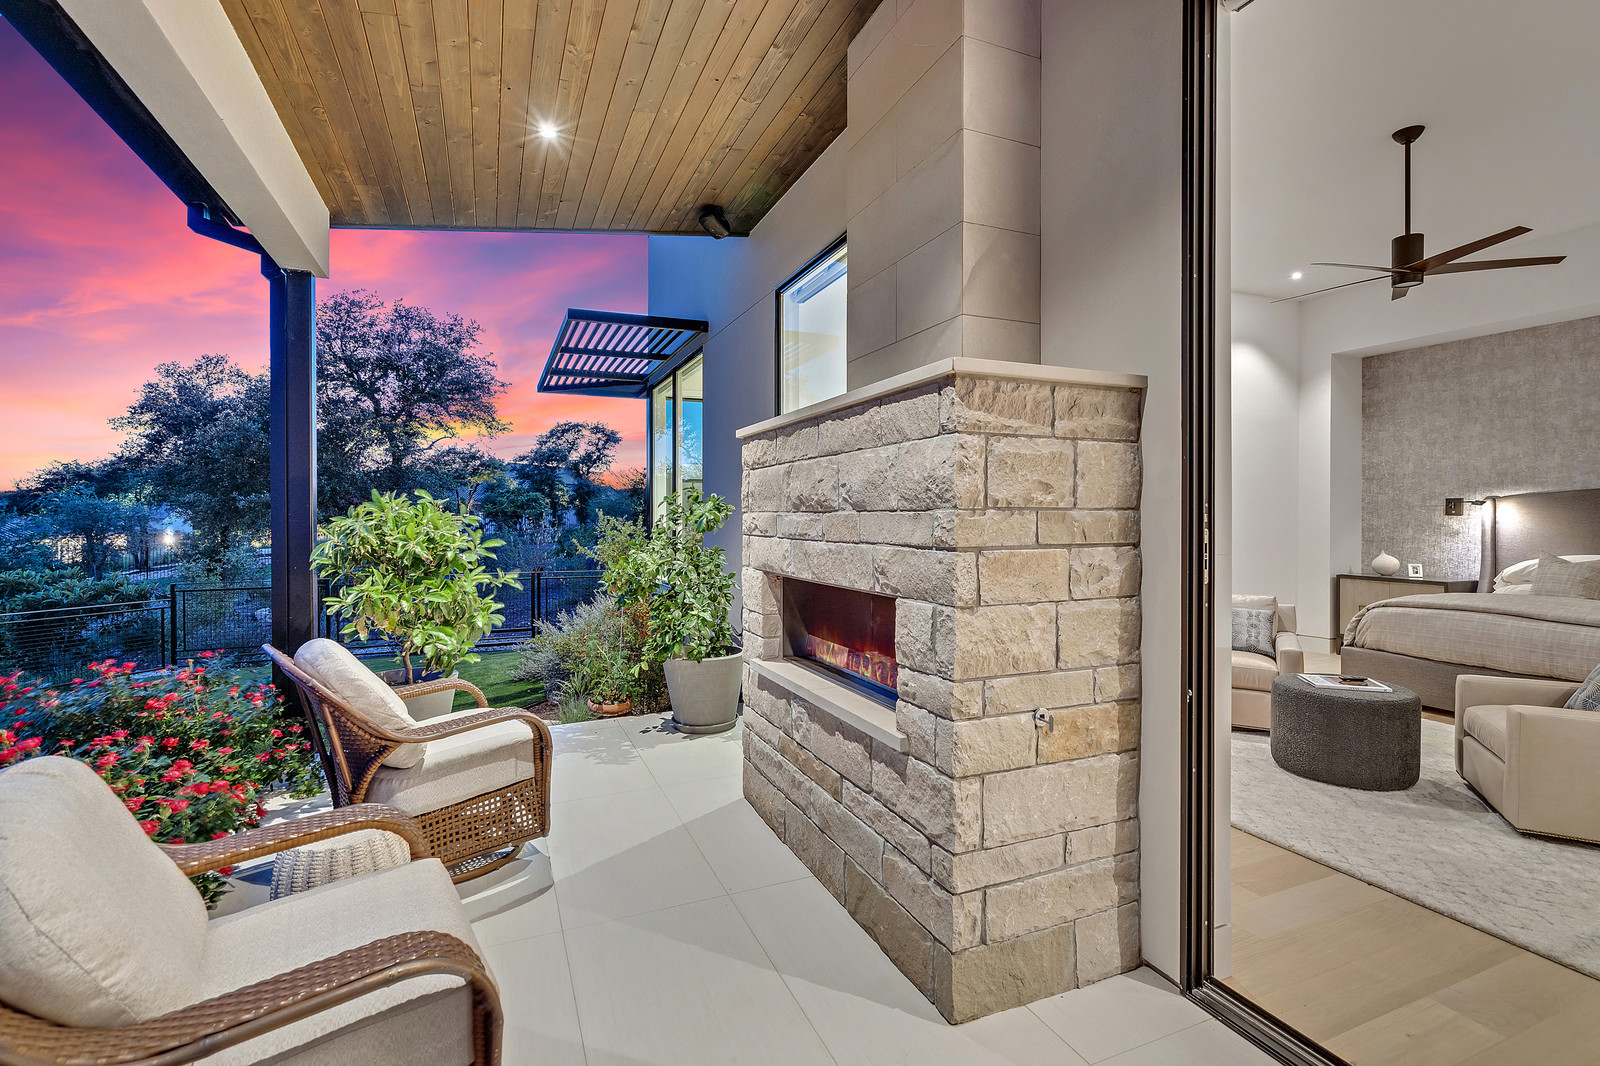 Master patio with fireplace, perfect for unwinding at the end of the day